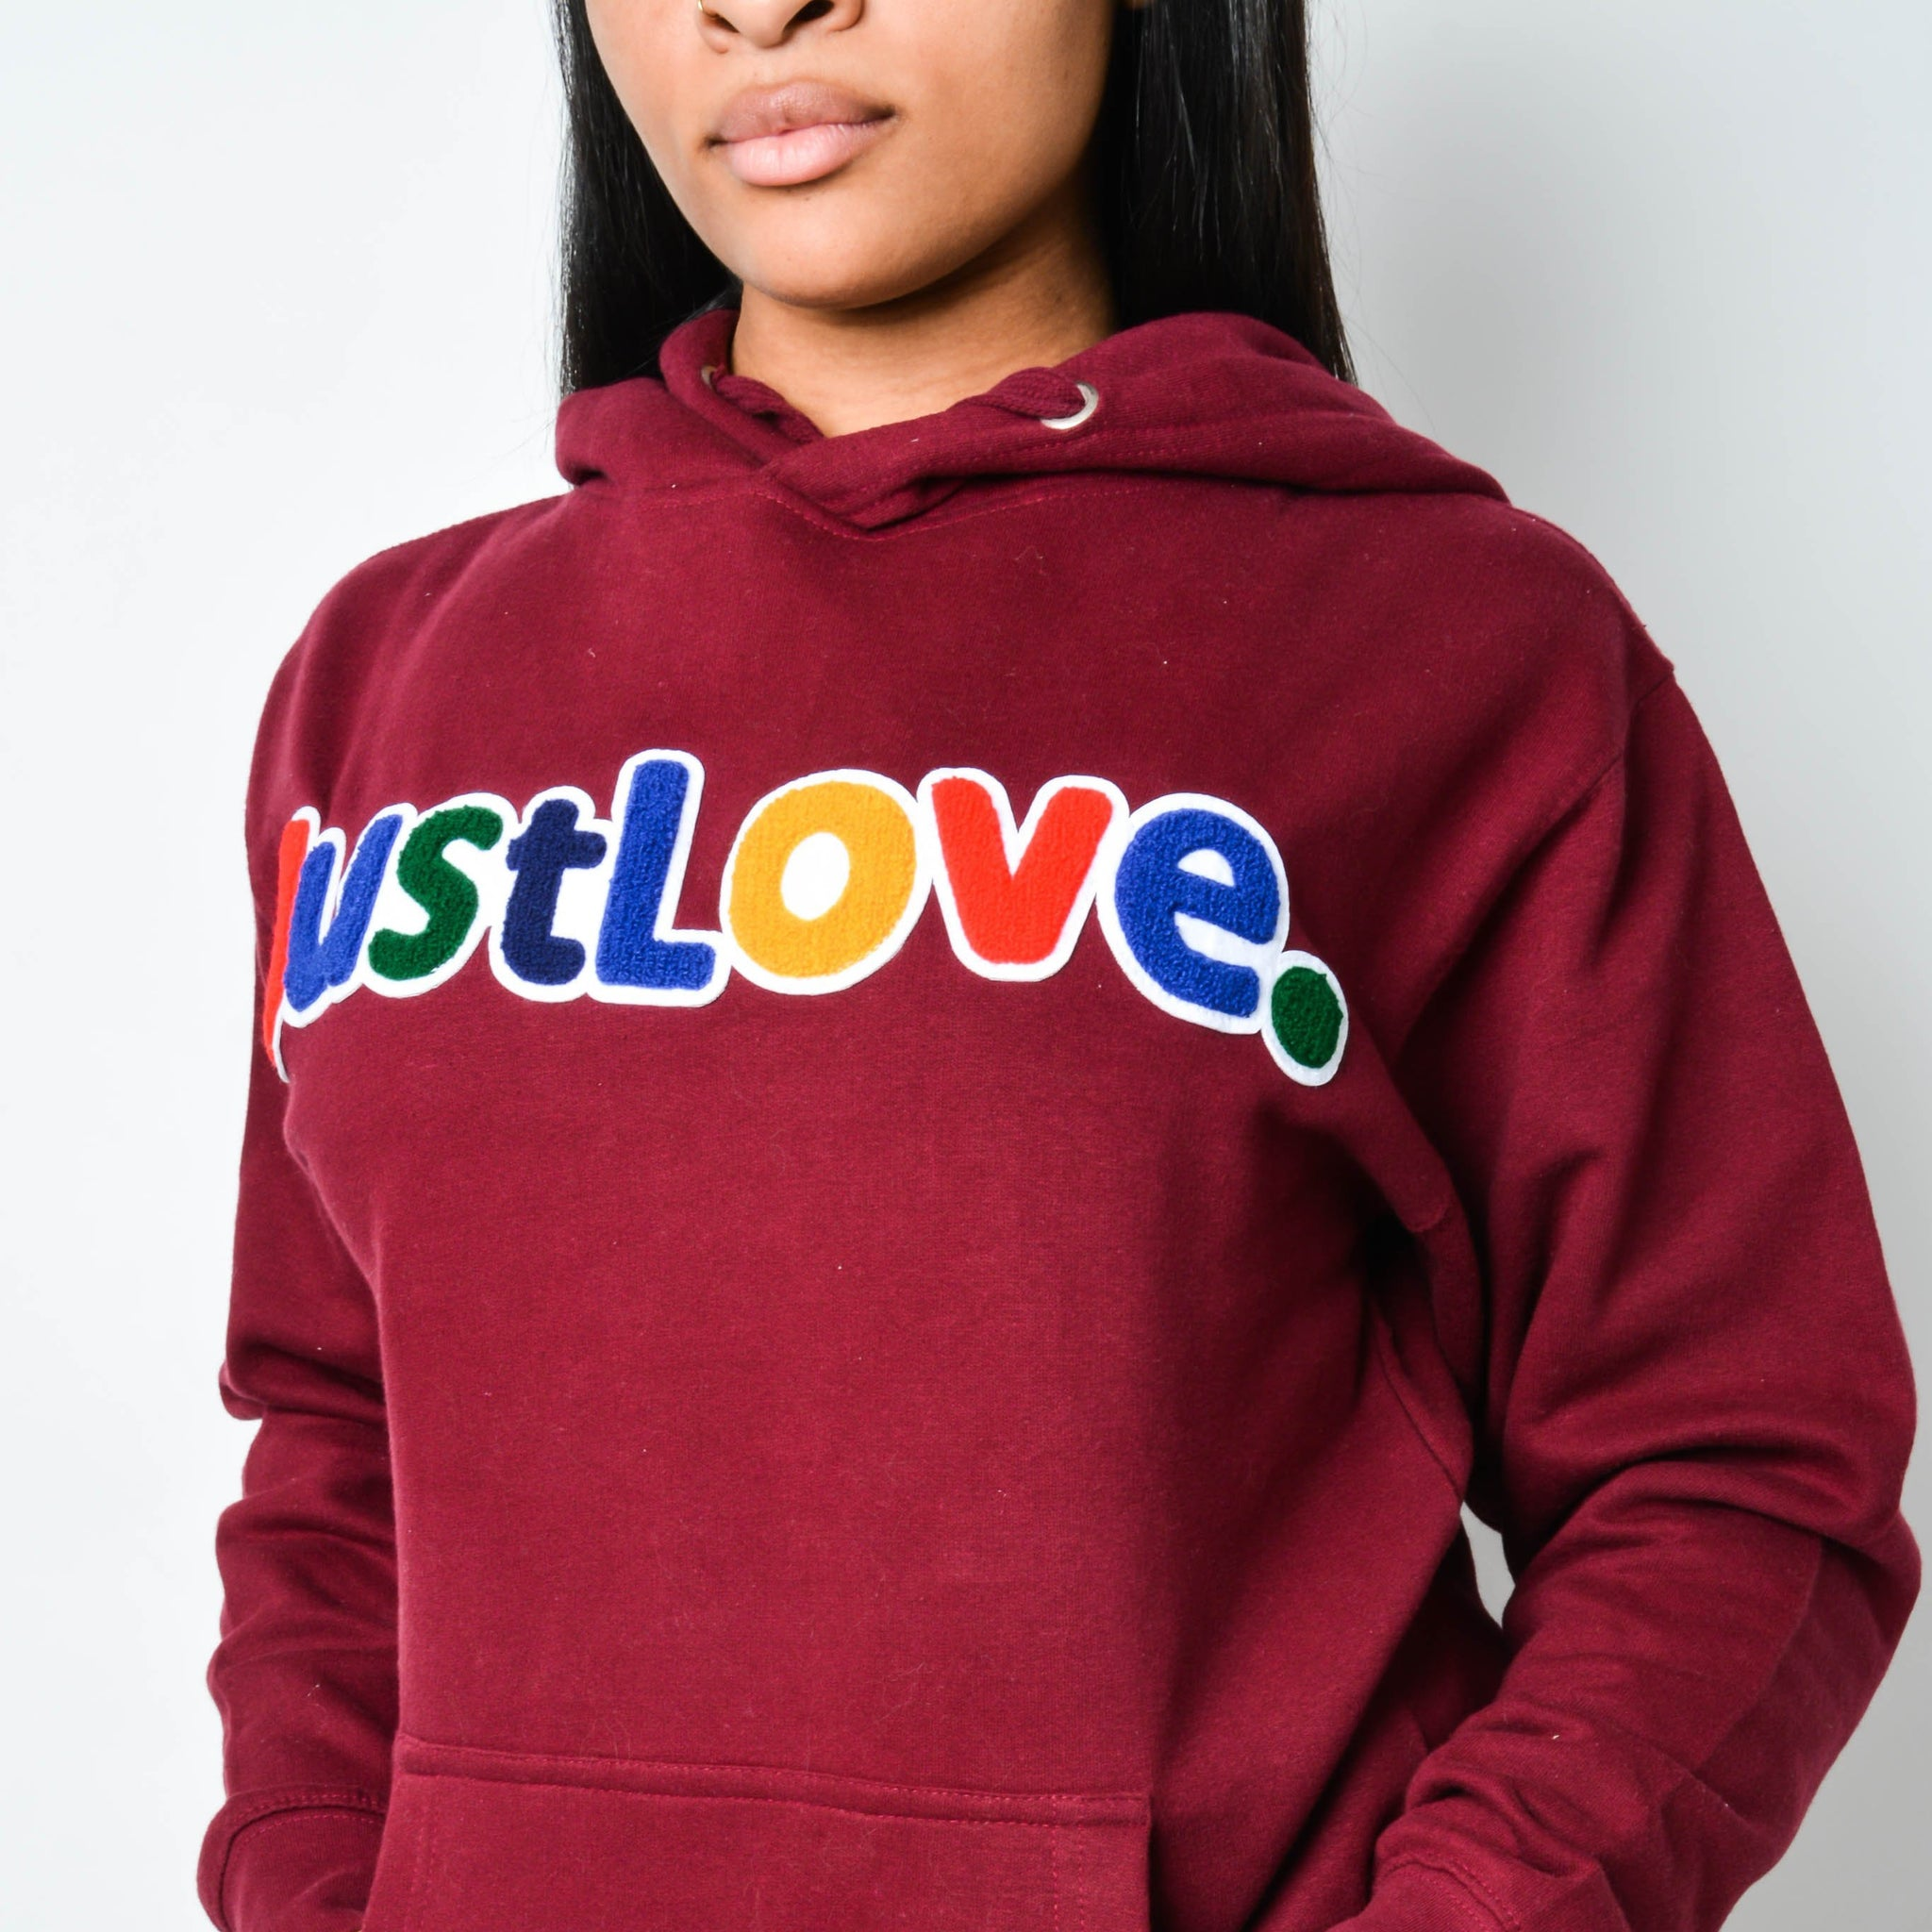 Just Love Pull Over Unisex